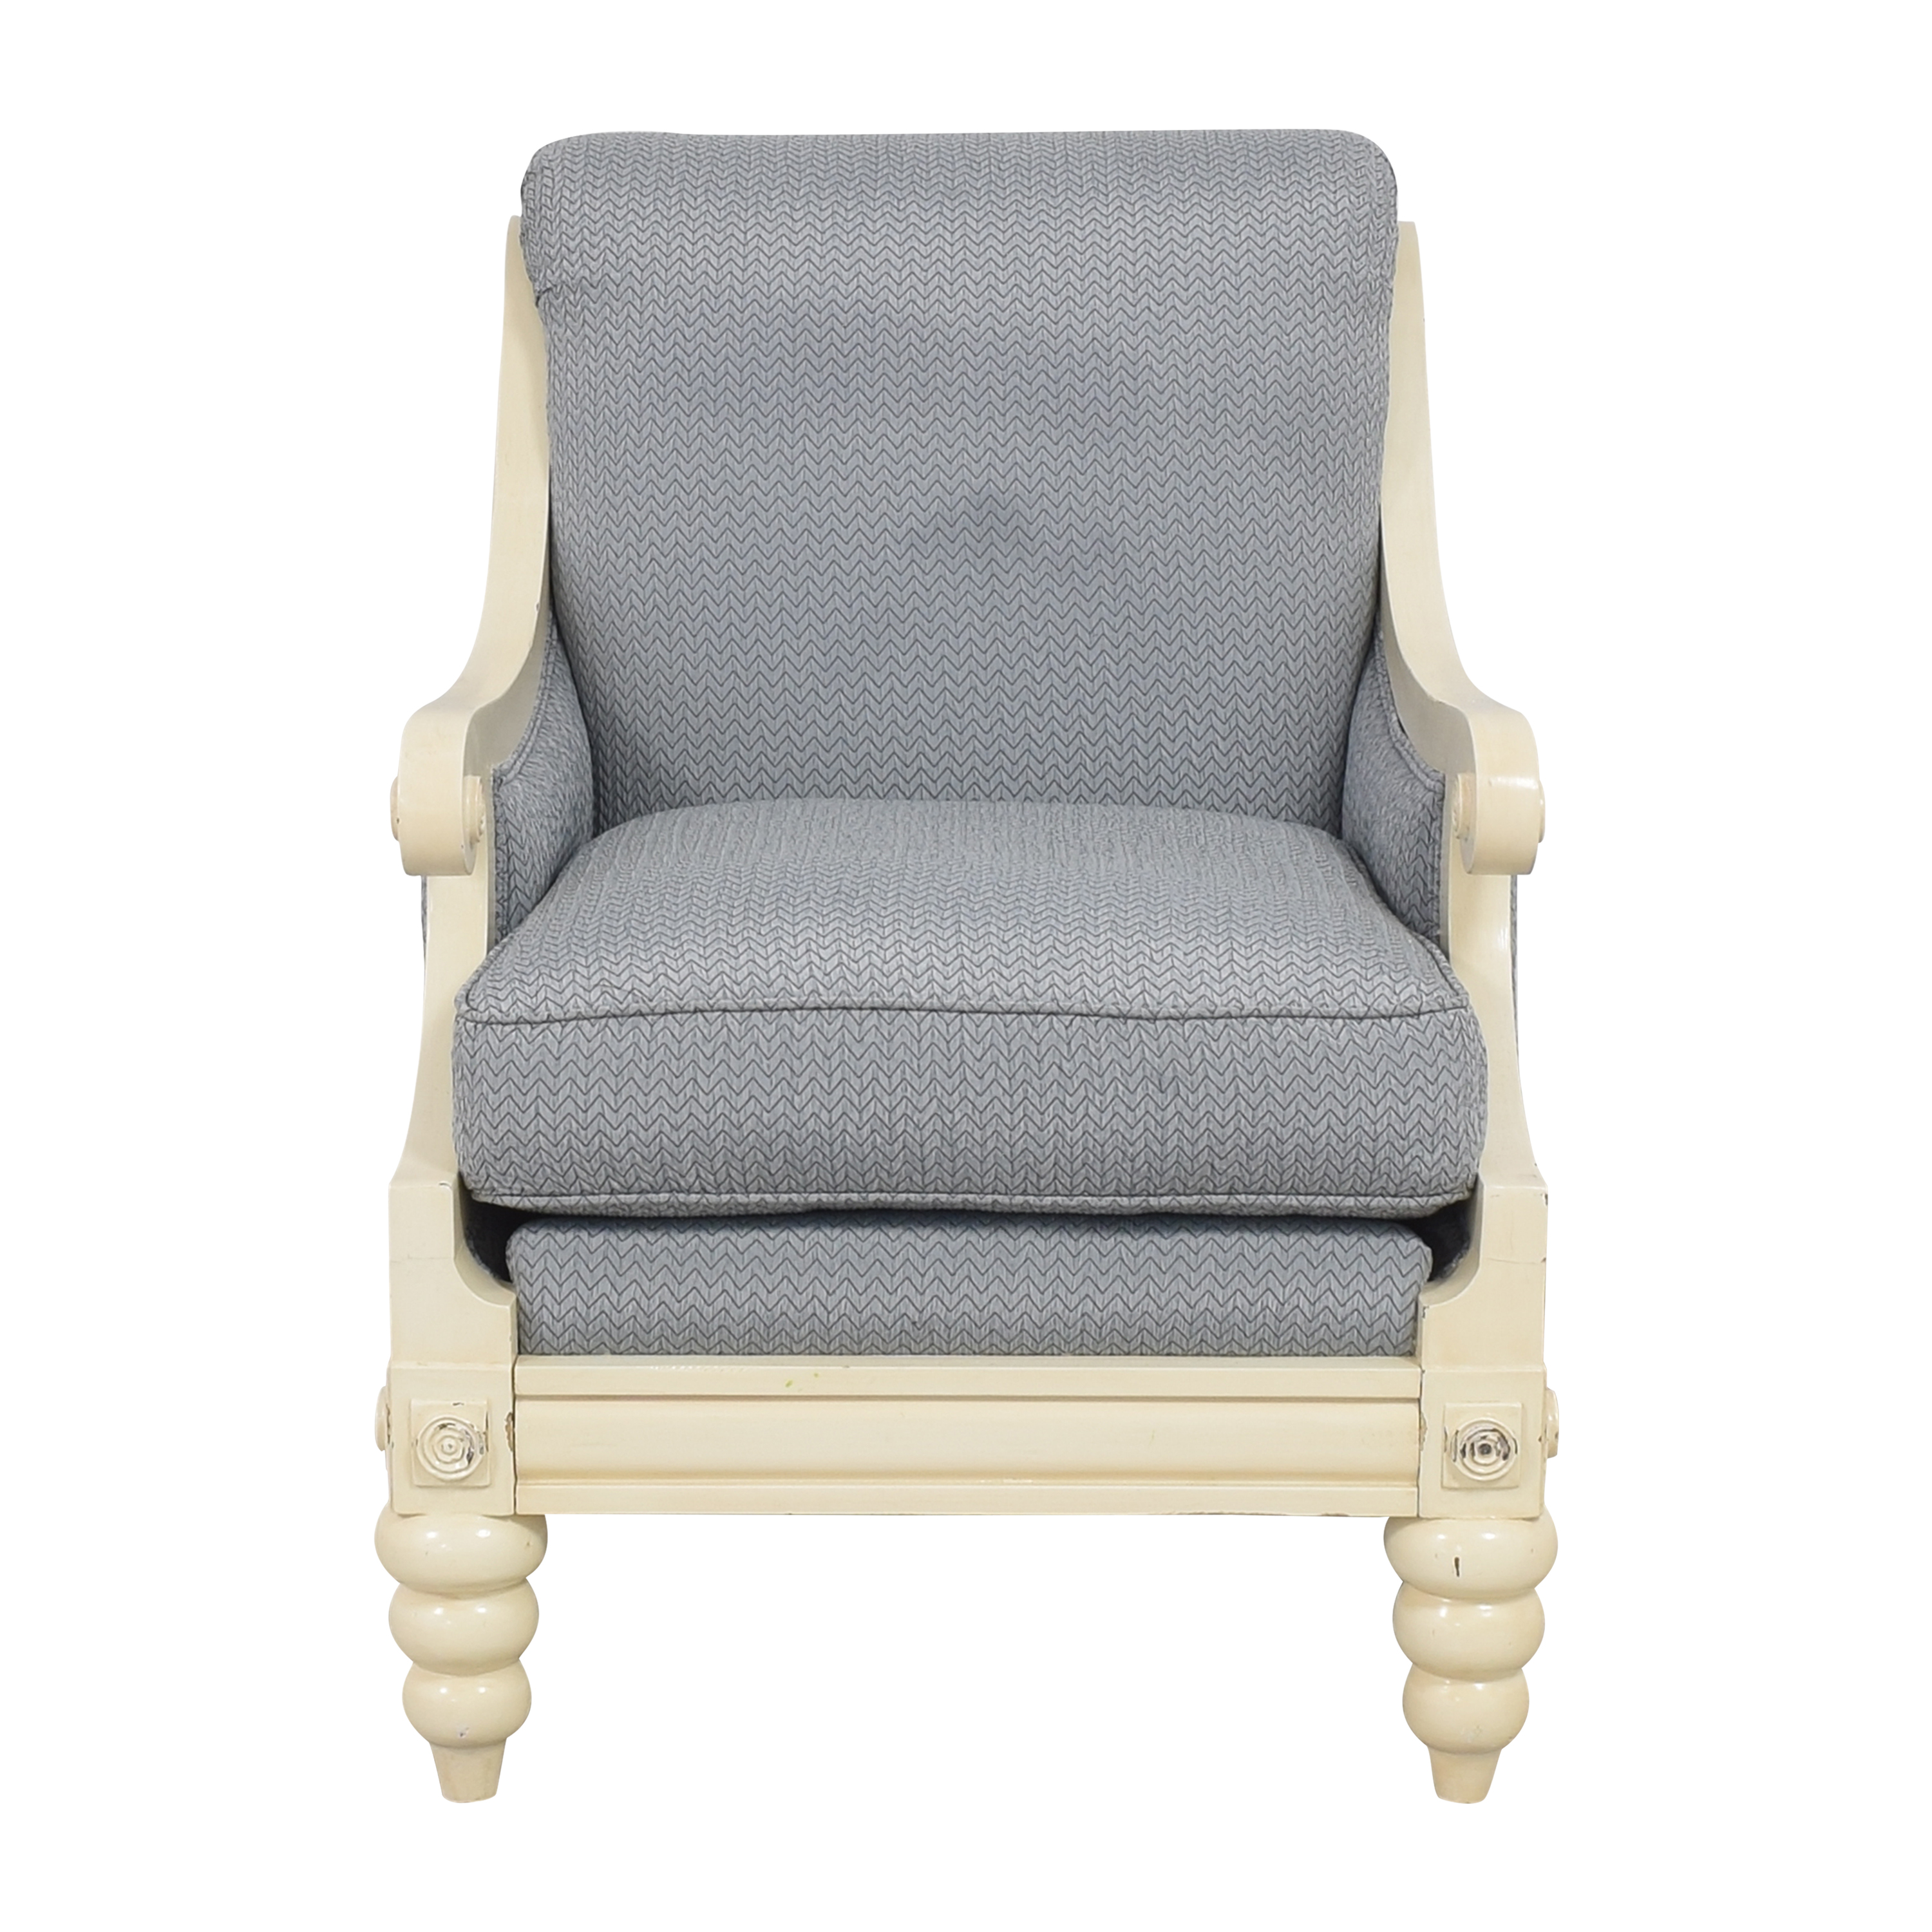 Accent Chair with Ottoman dimensions